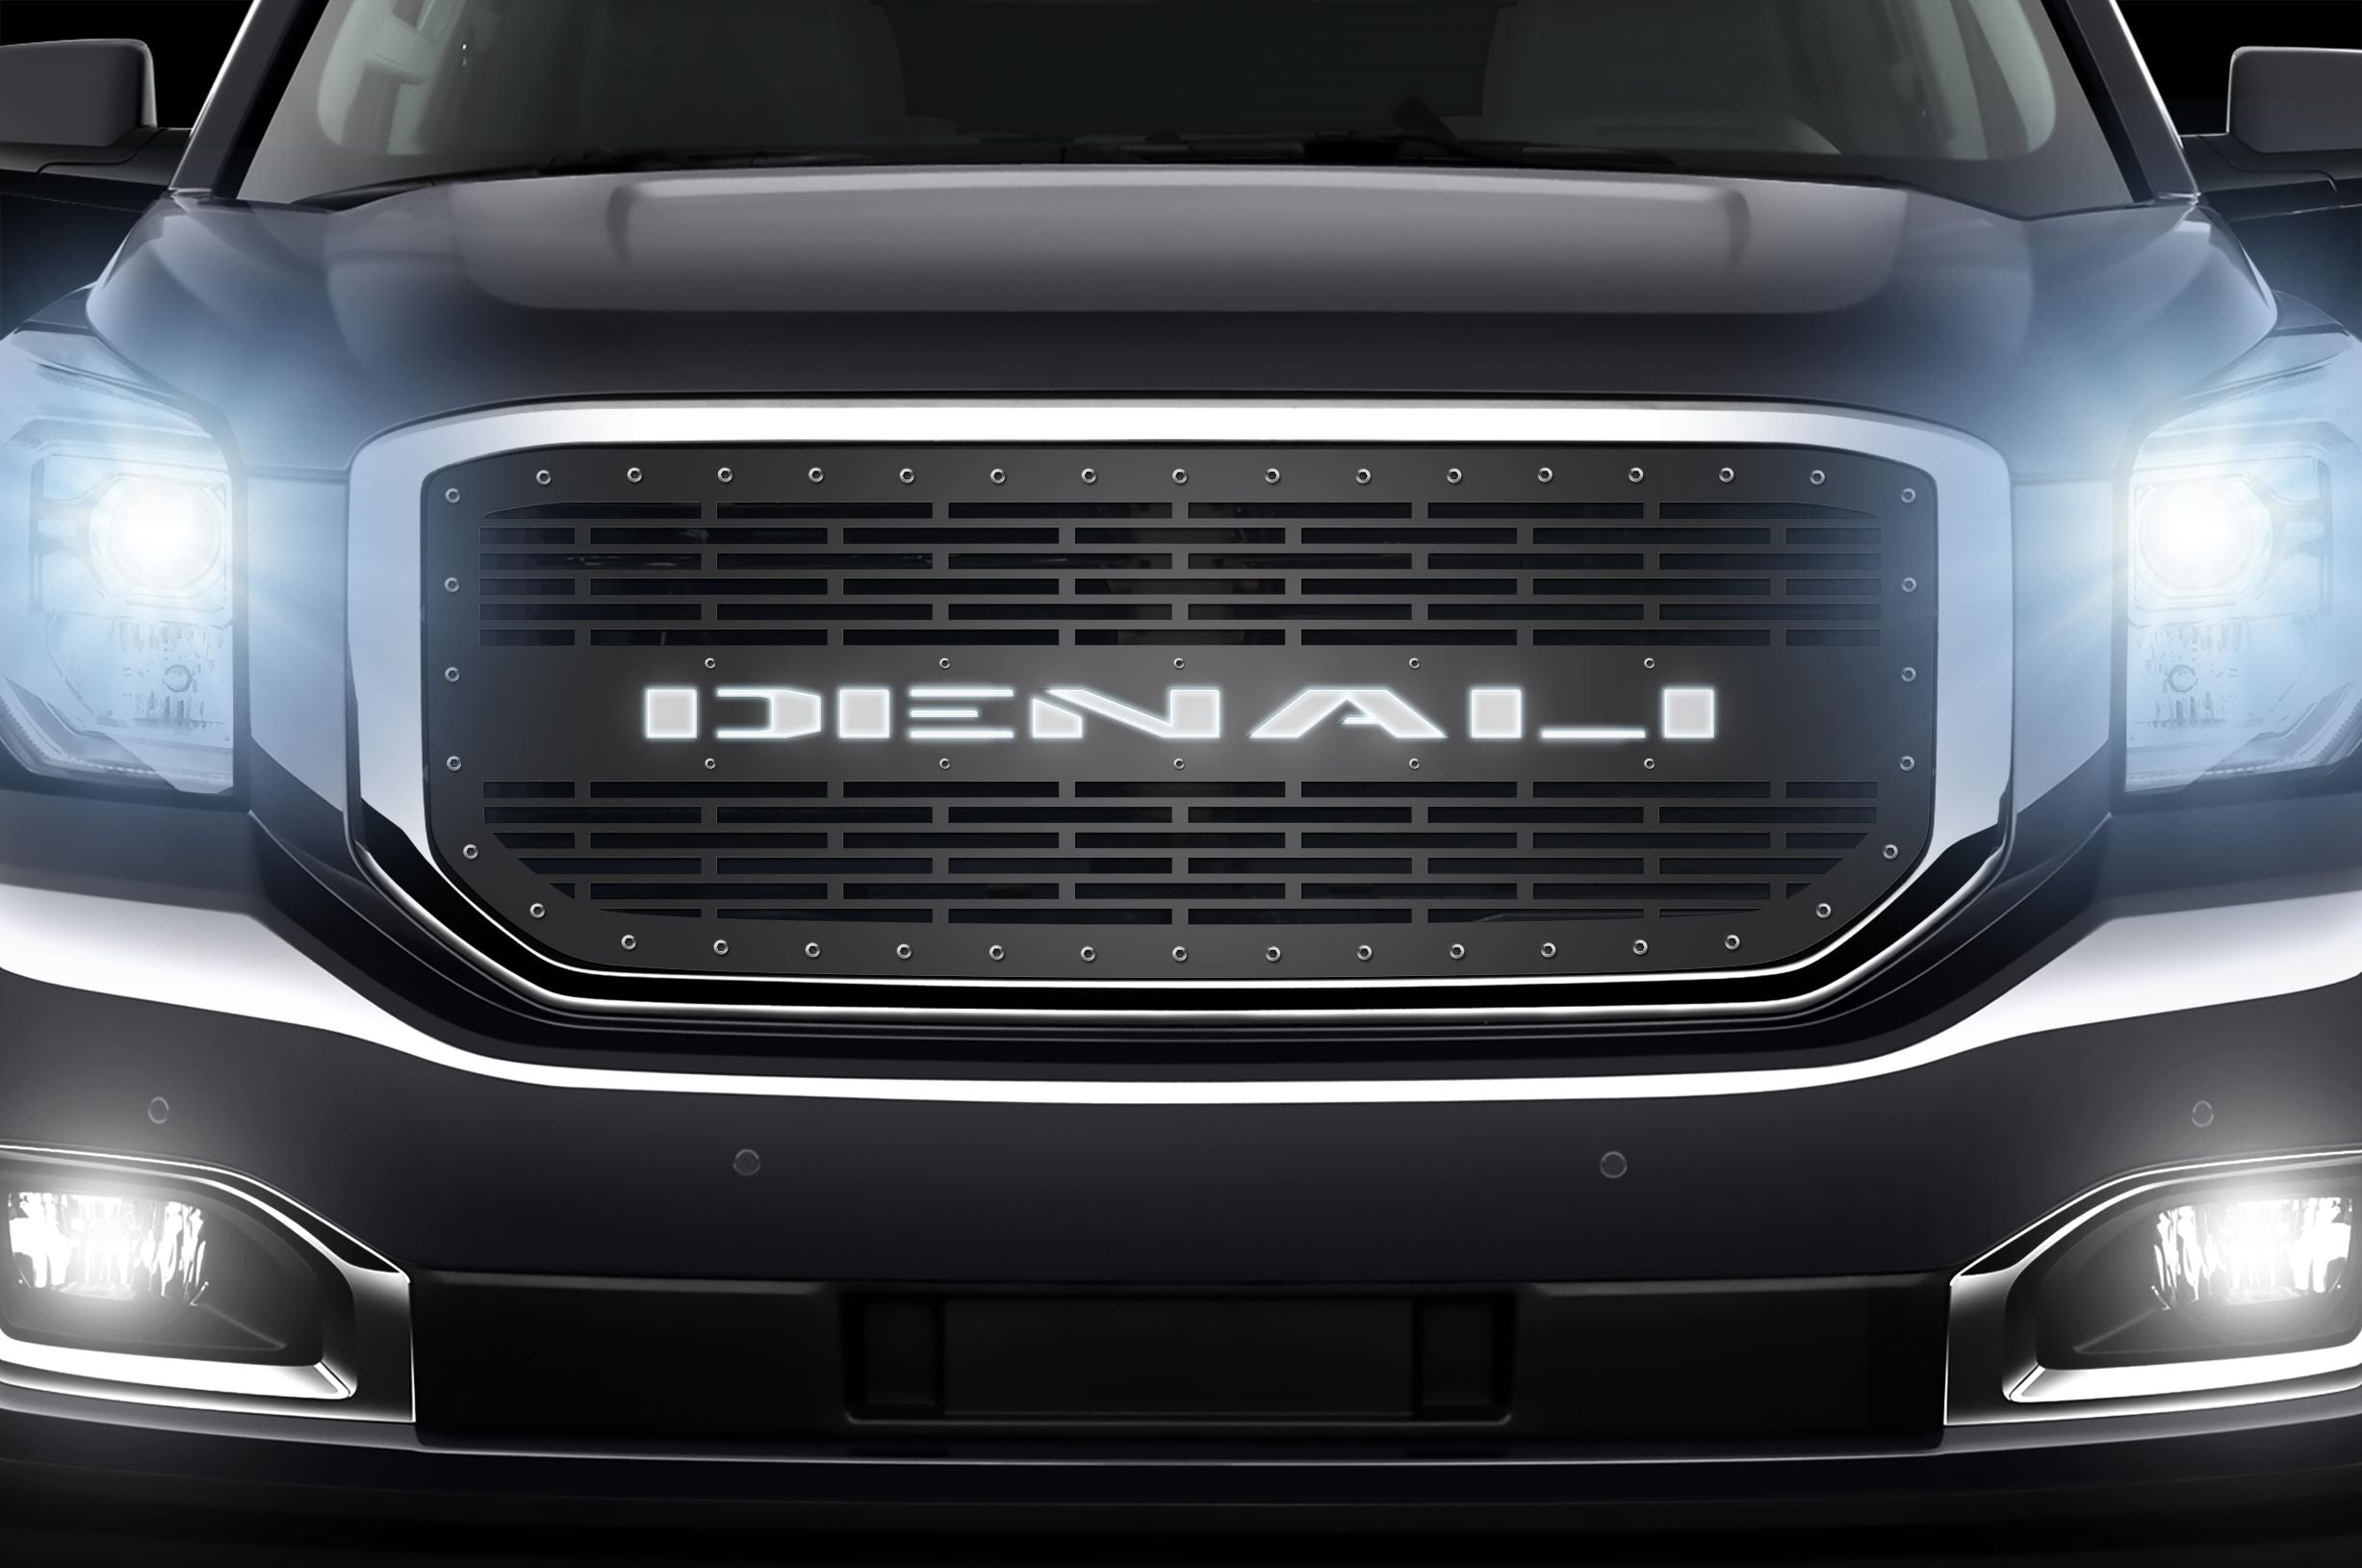 1 Piece Steel Grille for GMC Yukon Denali 2015-2020 -Denali X-Lite